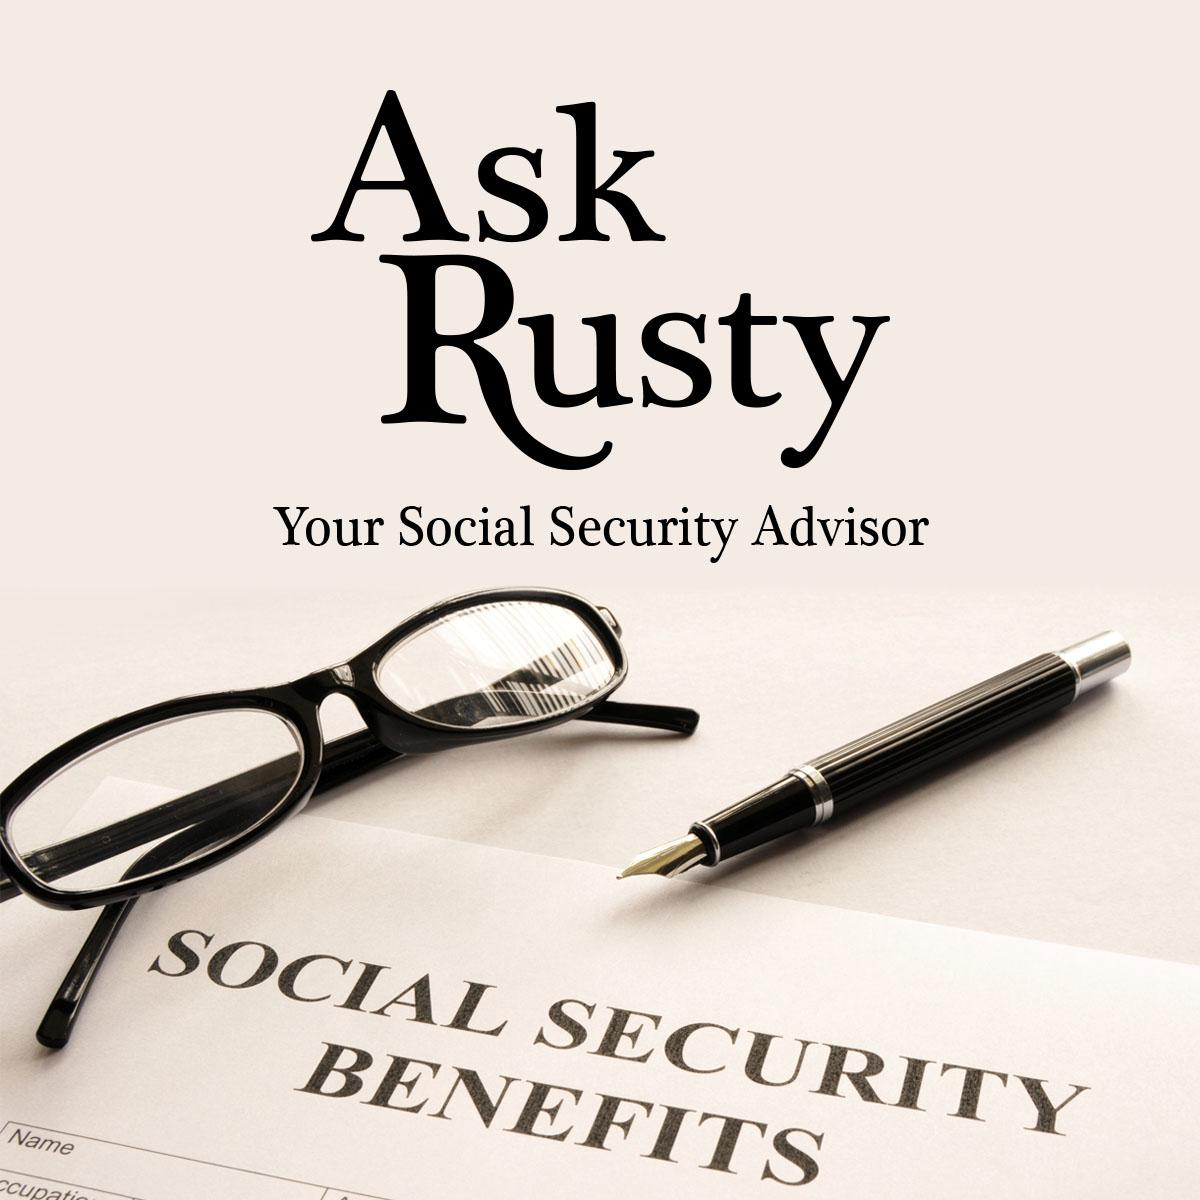 RUSSELL GLOOR: Ask Rusty - Why did my Social Security payment go down?